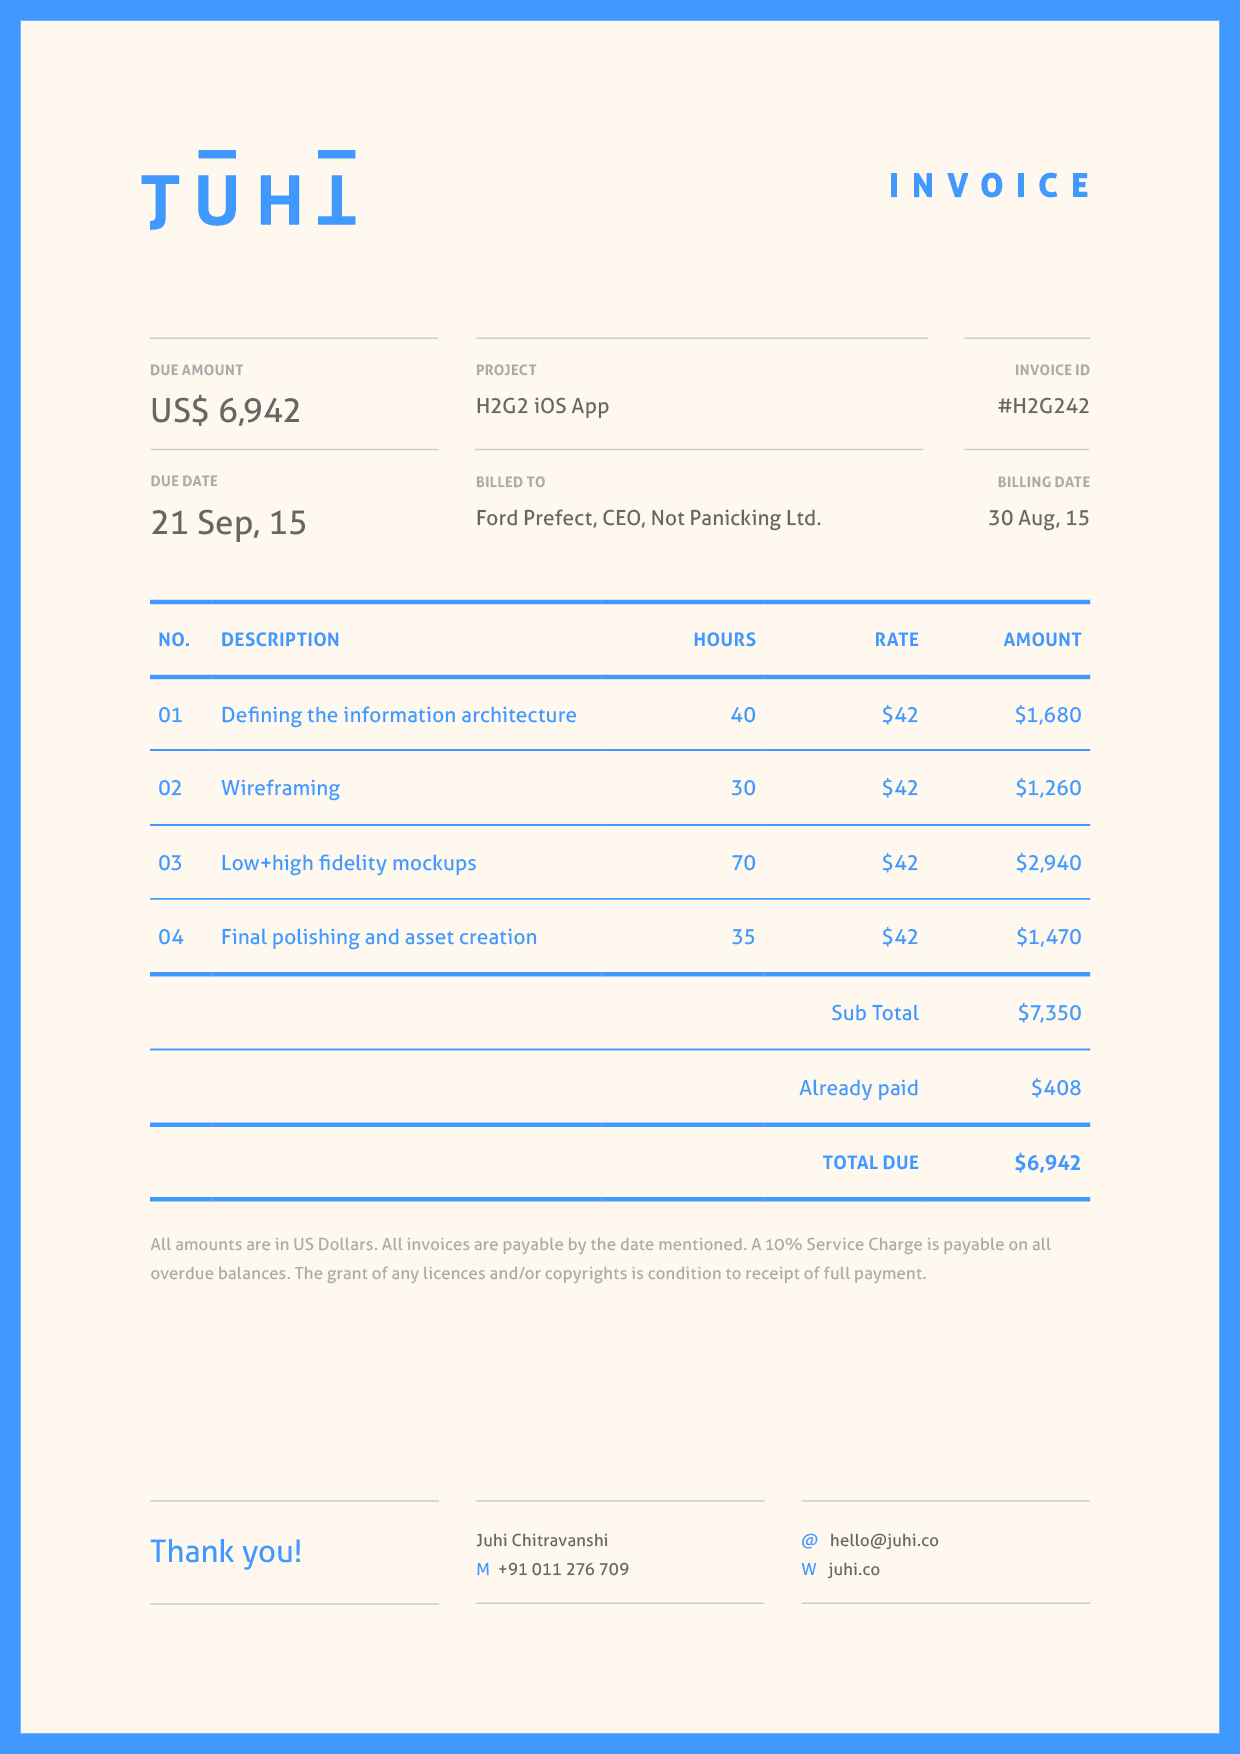 Coolmathgamesus  Unusual Dont Hold Back On Your Invoice  Inspiring Designs  With Heavenly Invoice By Juhi Chitravanshi Follow With Astounding What Is On An Invoice Also How To Create Invoices In Excel In Addition Invoice Download Template And What Does A Pro Forma Invoice Mean As Well As Invoice Database Design Additionally Porforma Invoice From Inspirationfeedcom With Coolmathgamesus  Heavenly Dont Hold Back On Your Invoice  Inspiring Designs  With Astounding Invoice By Juhi Chitravanshi Follow And Unusual What Is On An Invoice Also How To Create Invoices In Excel In Addition Invoice Download Template From Inspirationfeedcom